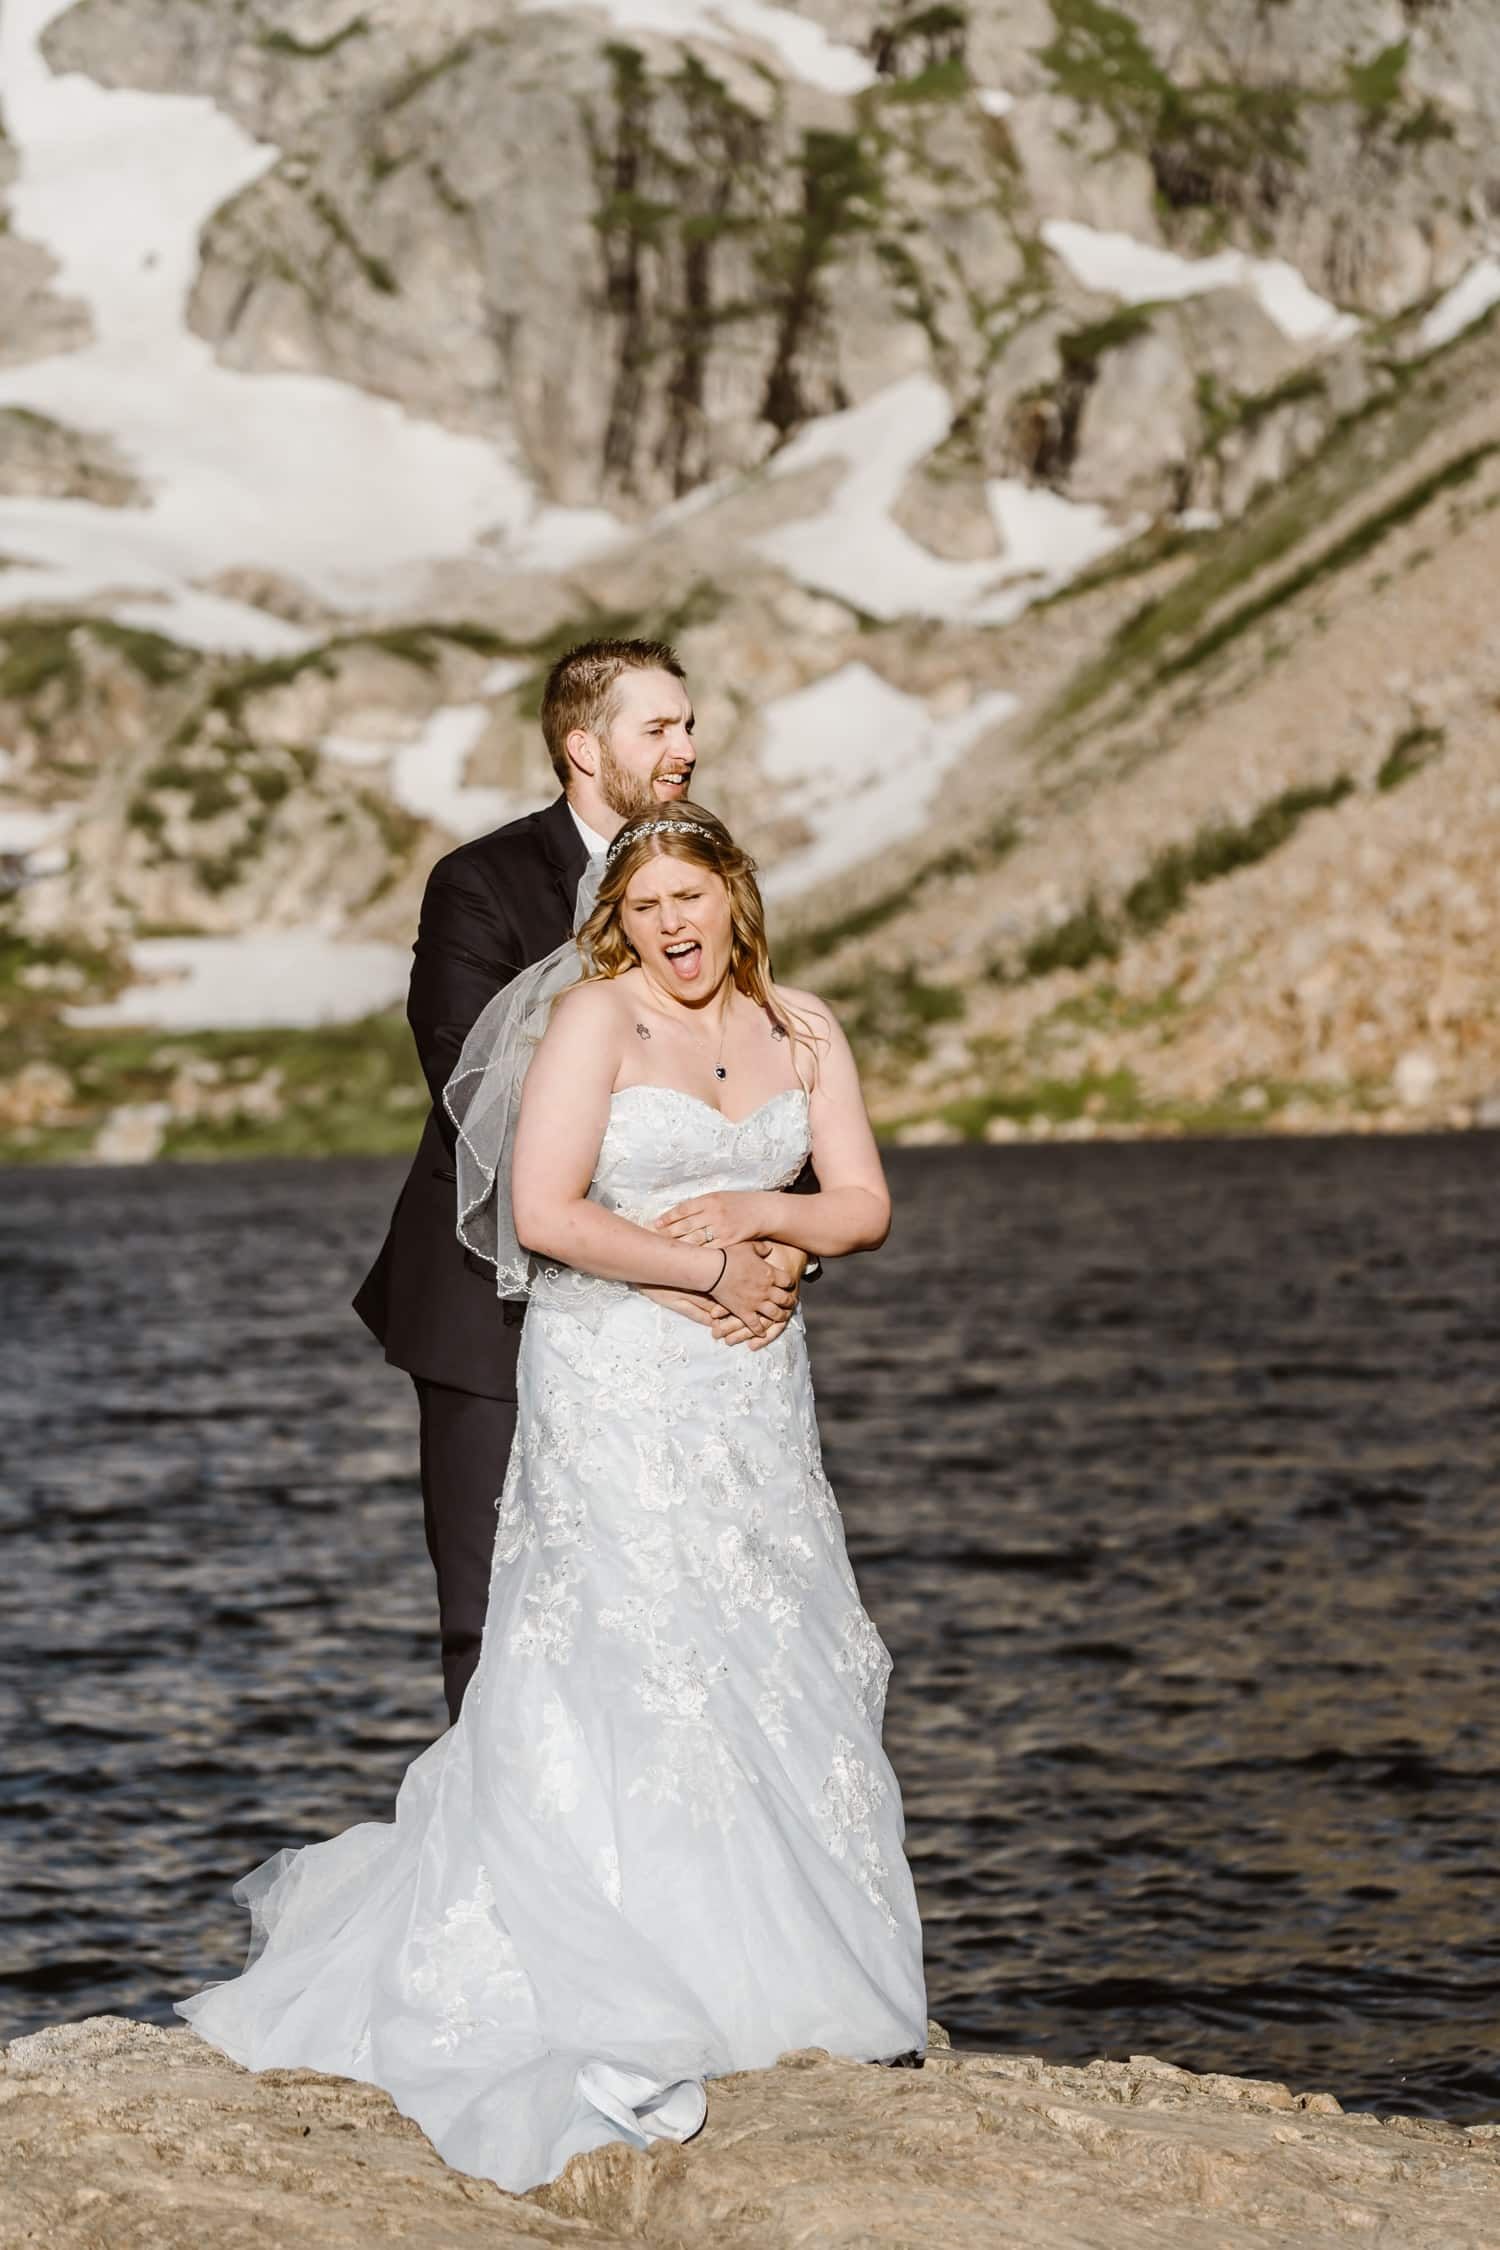 Bride and Groom Laughing at Colorado Adventure Elopement